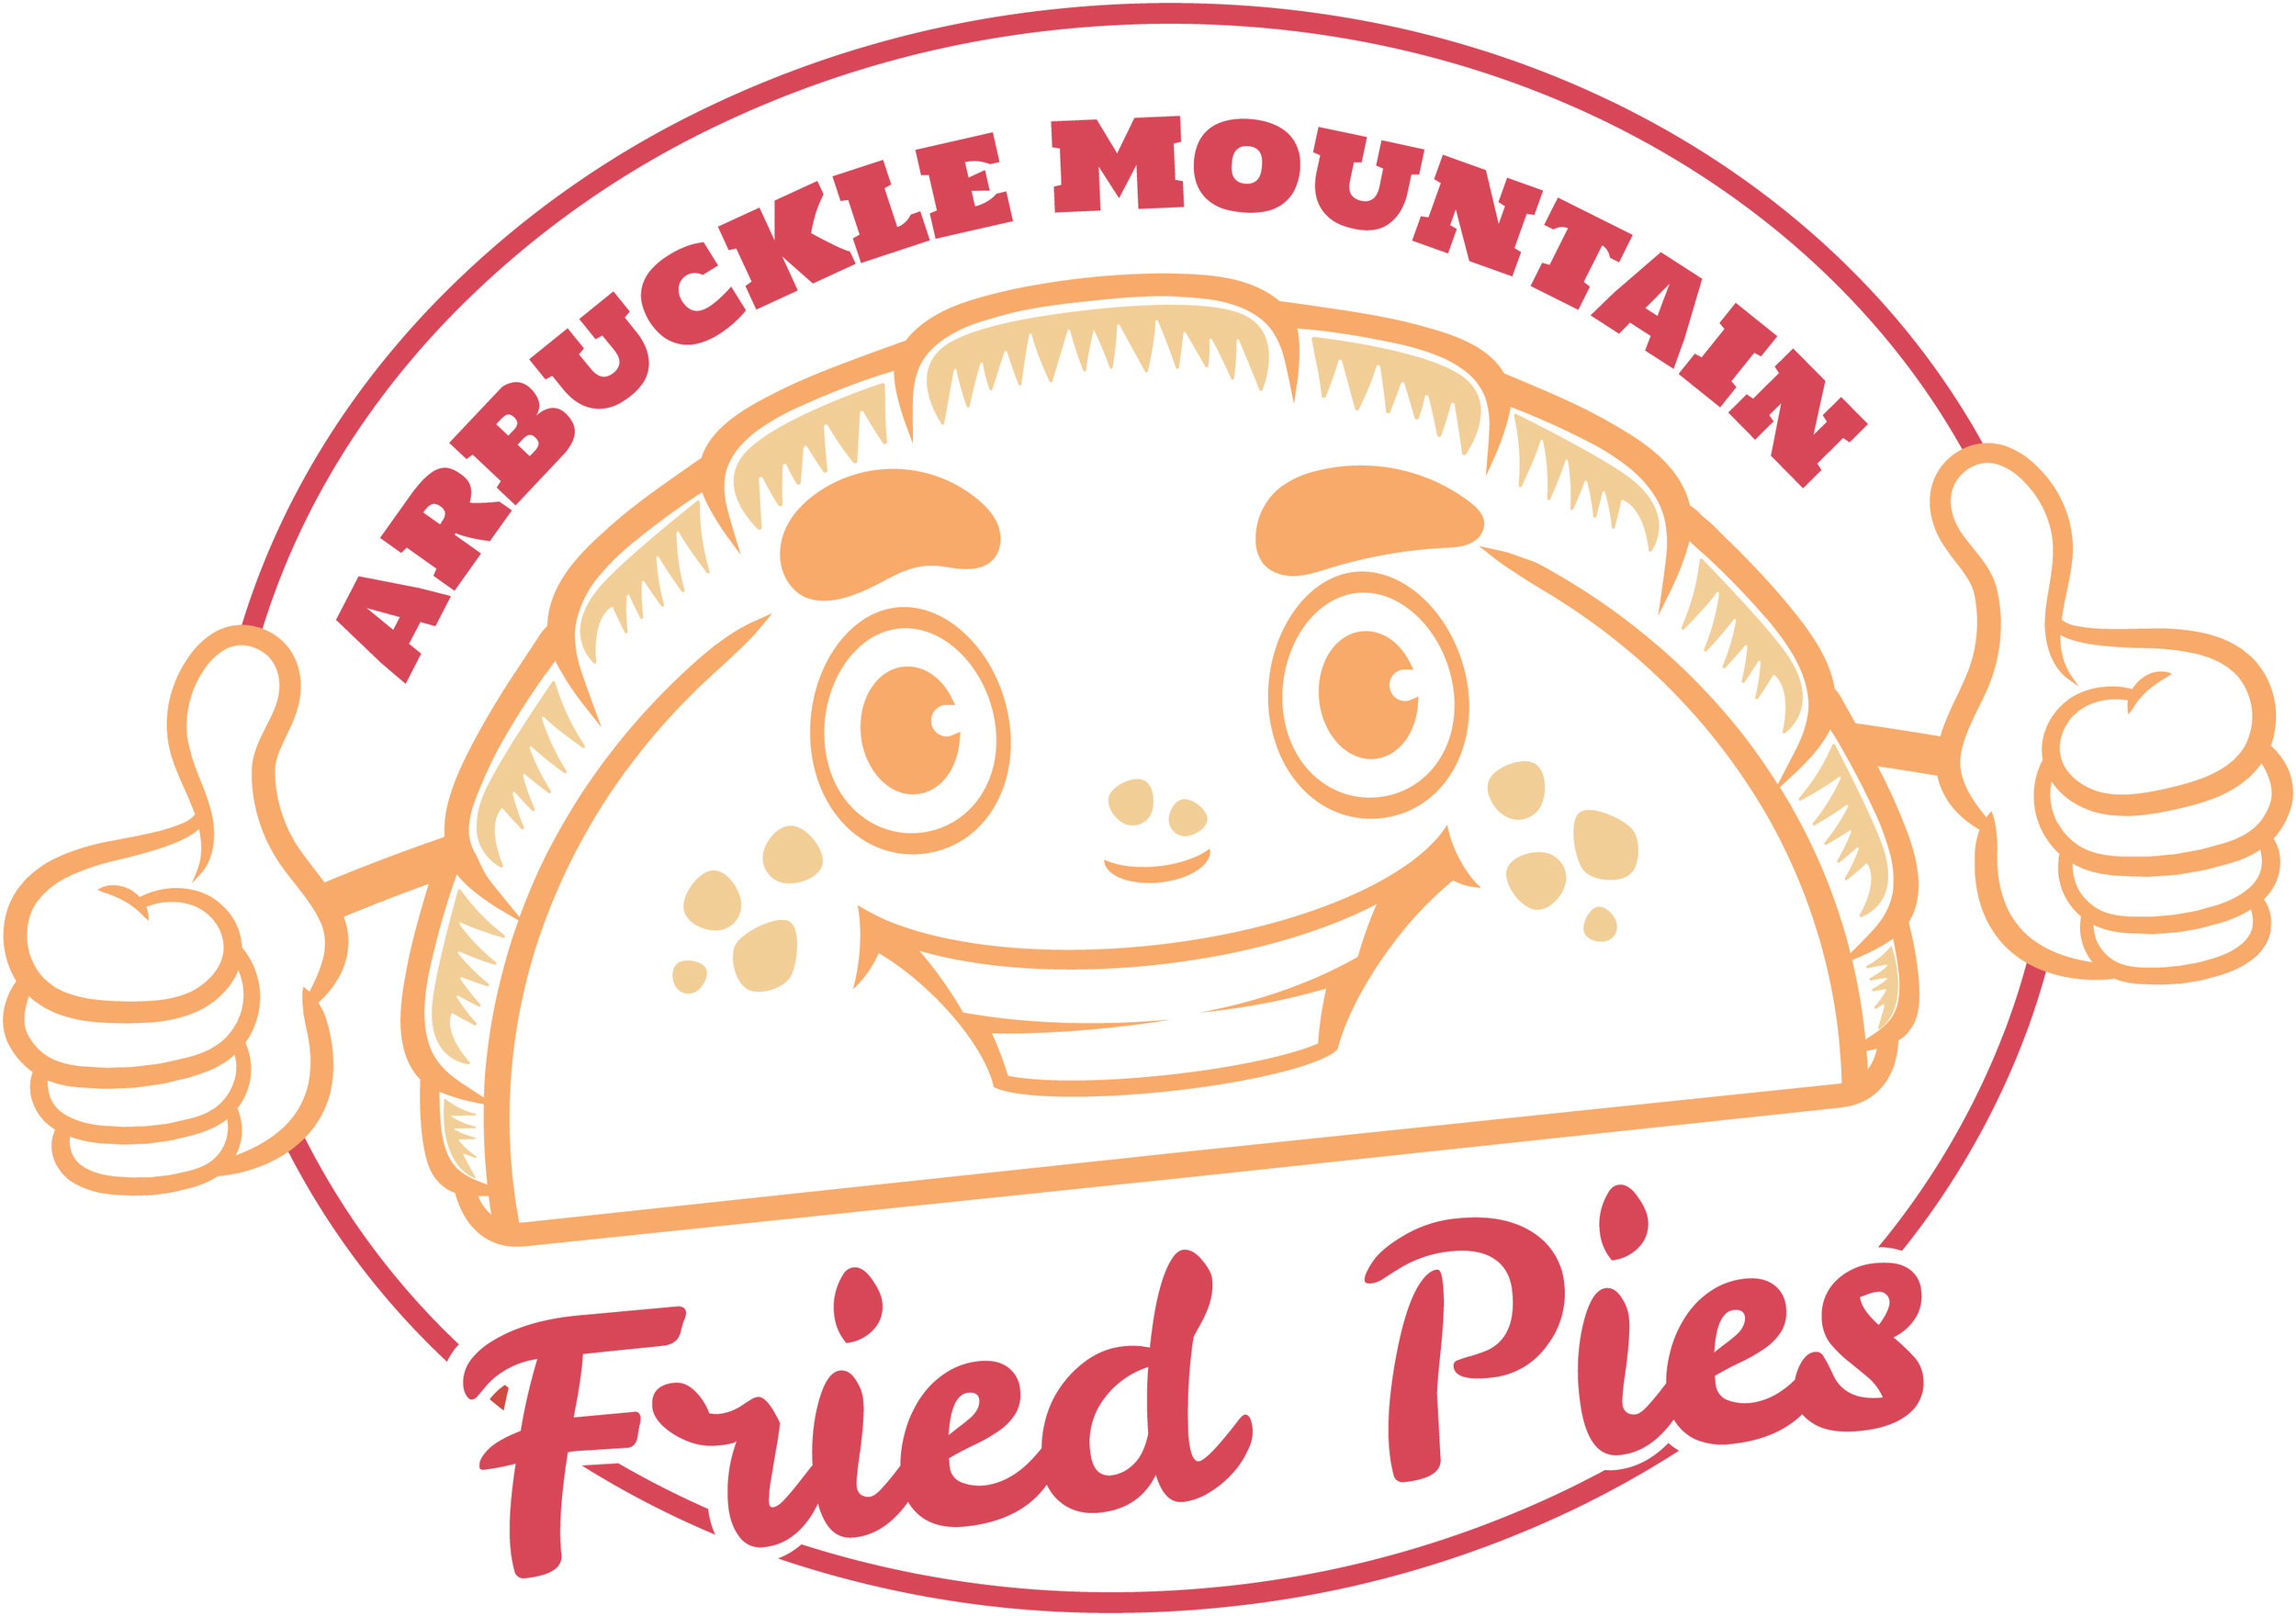 www_arbucklemountainfriedpies.jpg